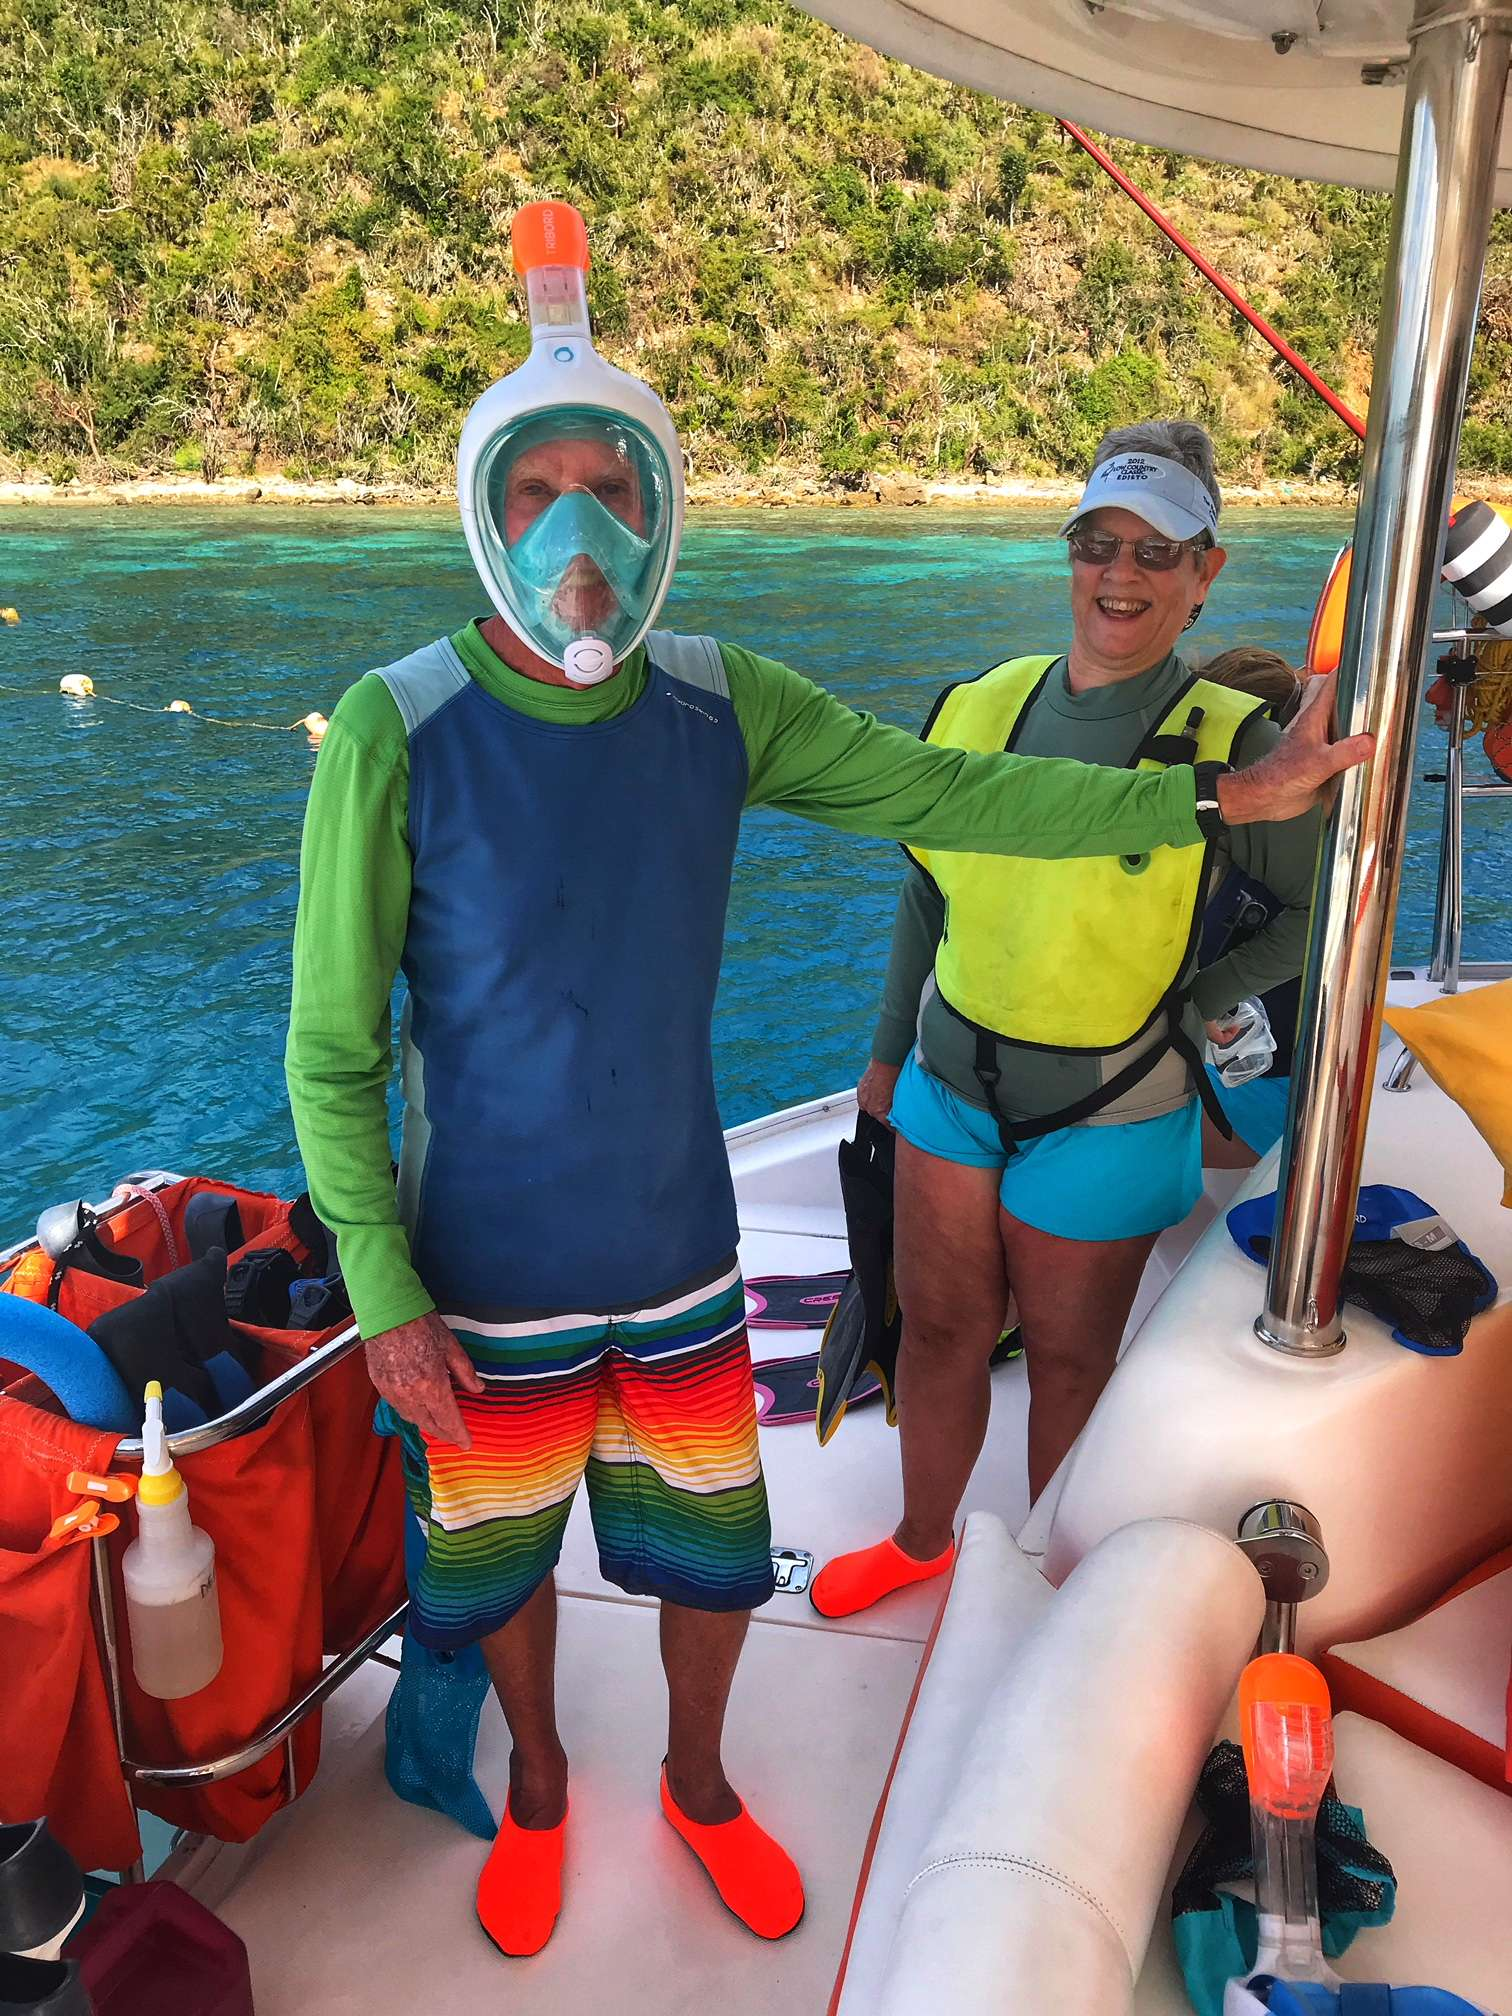 We have both traditional masks/snorkels as well as the new full face snorkel masks on Starfish.